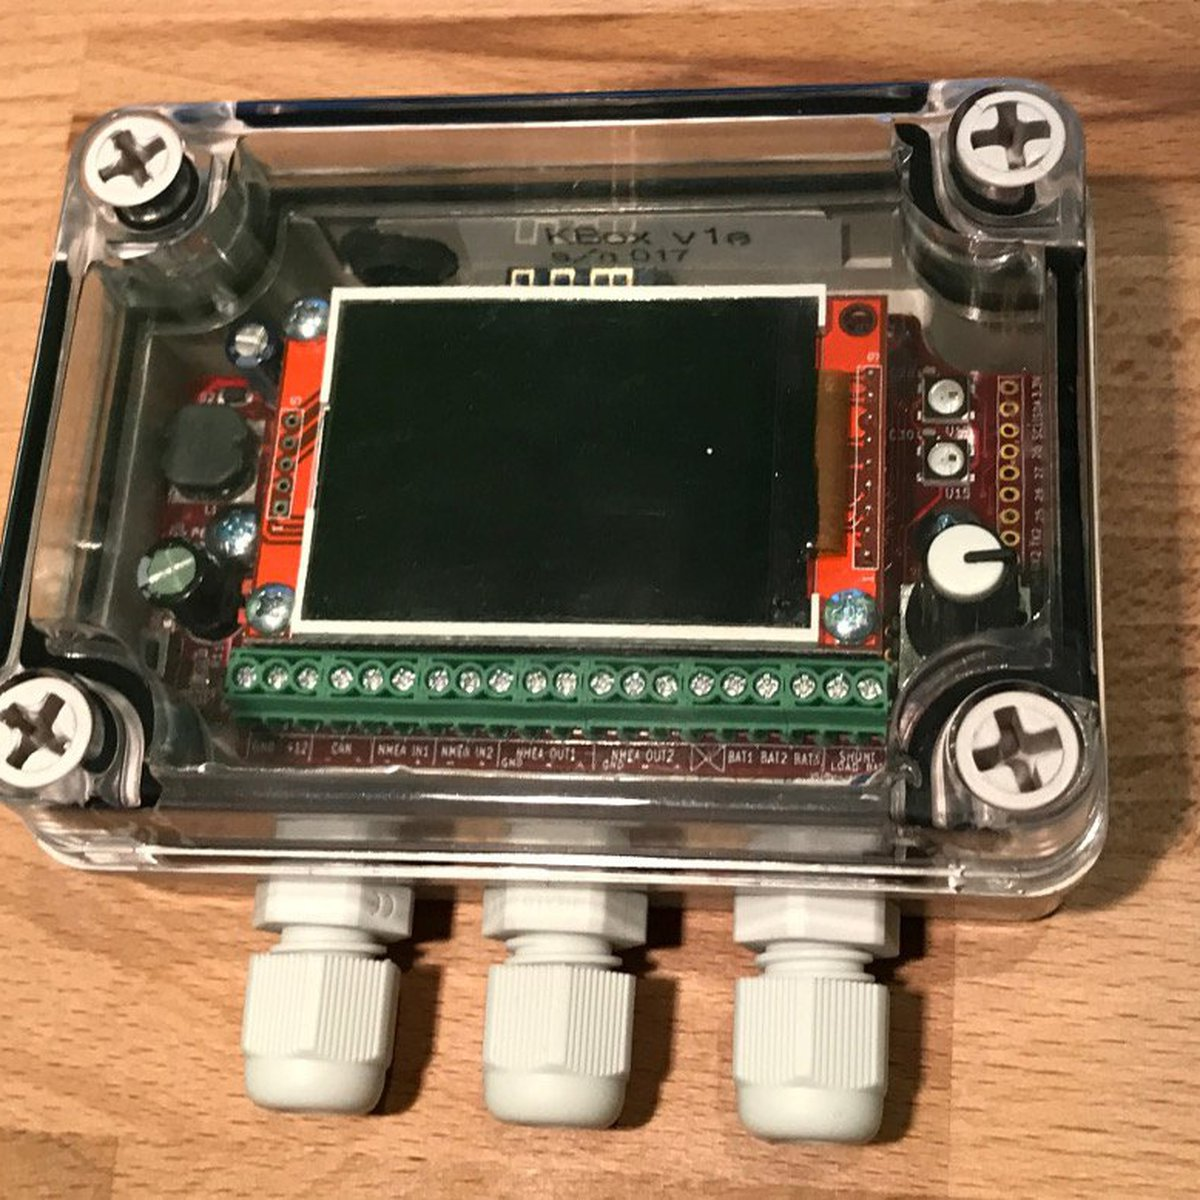 KBox - Open-source boat gateway from Blue Coconut on Tindie